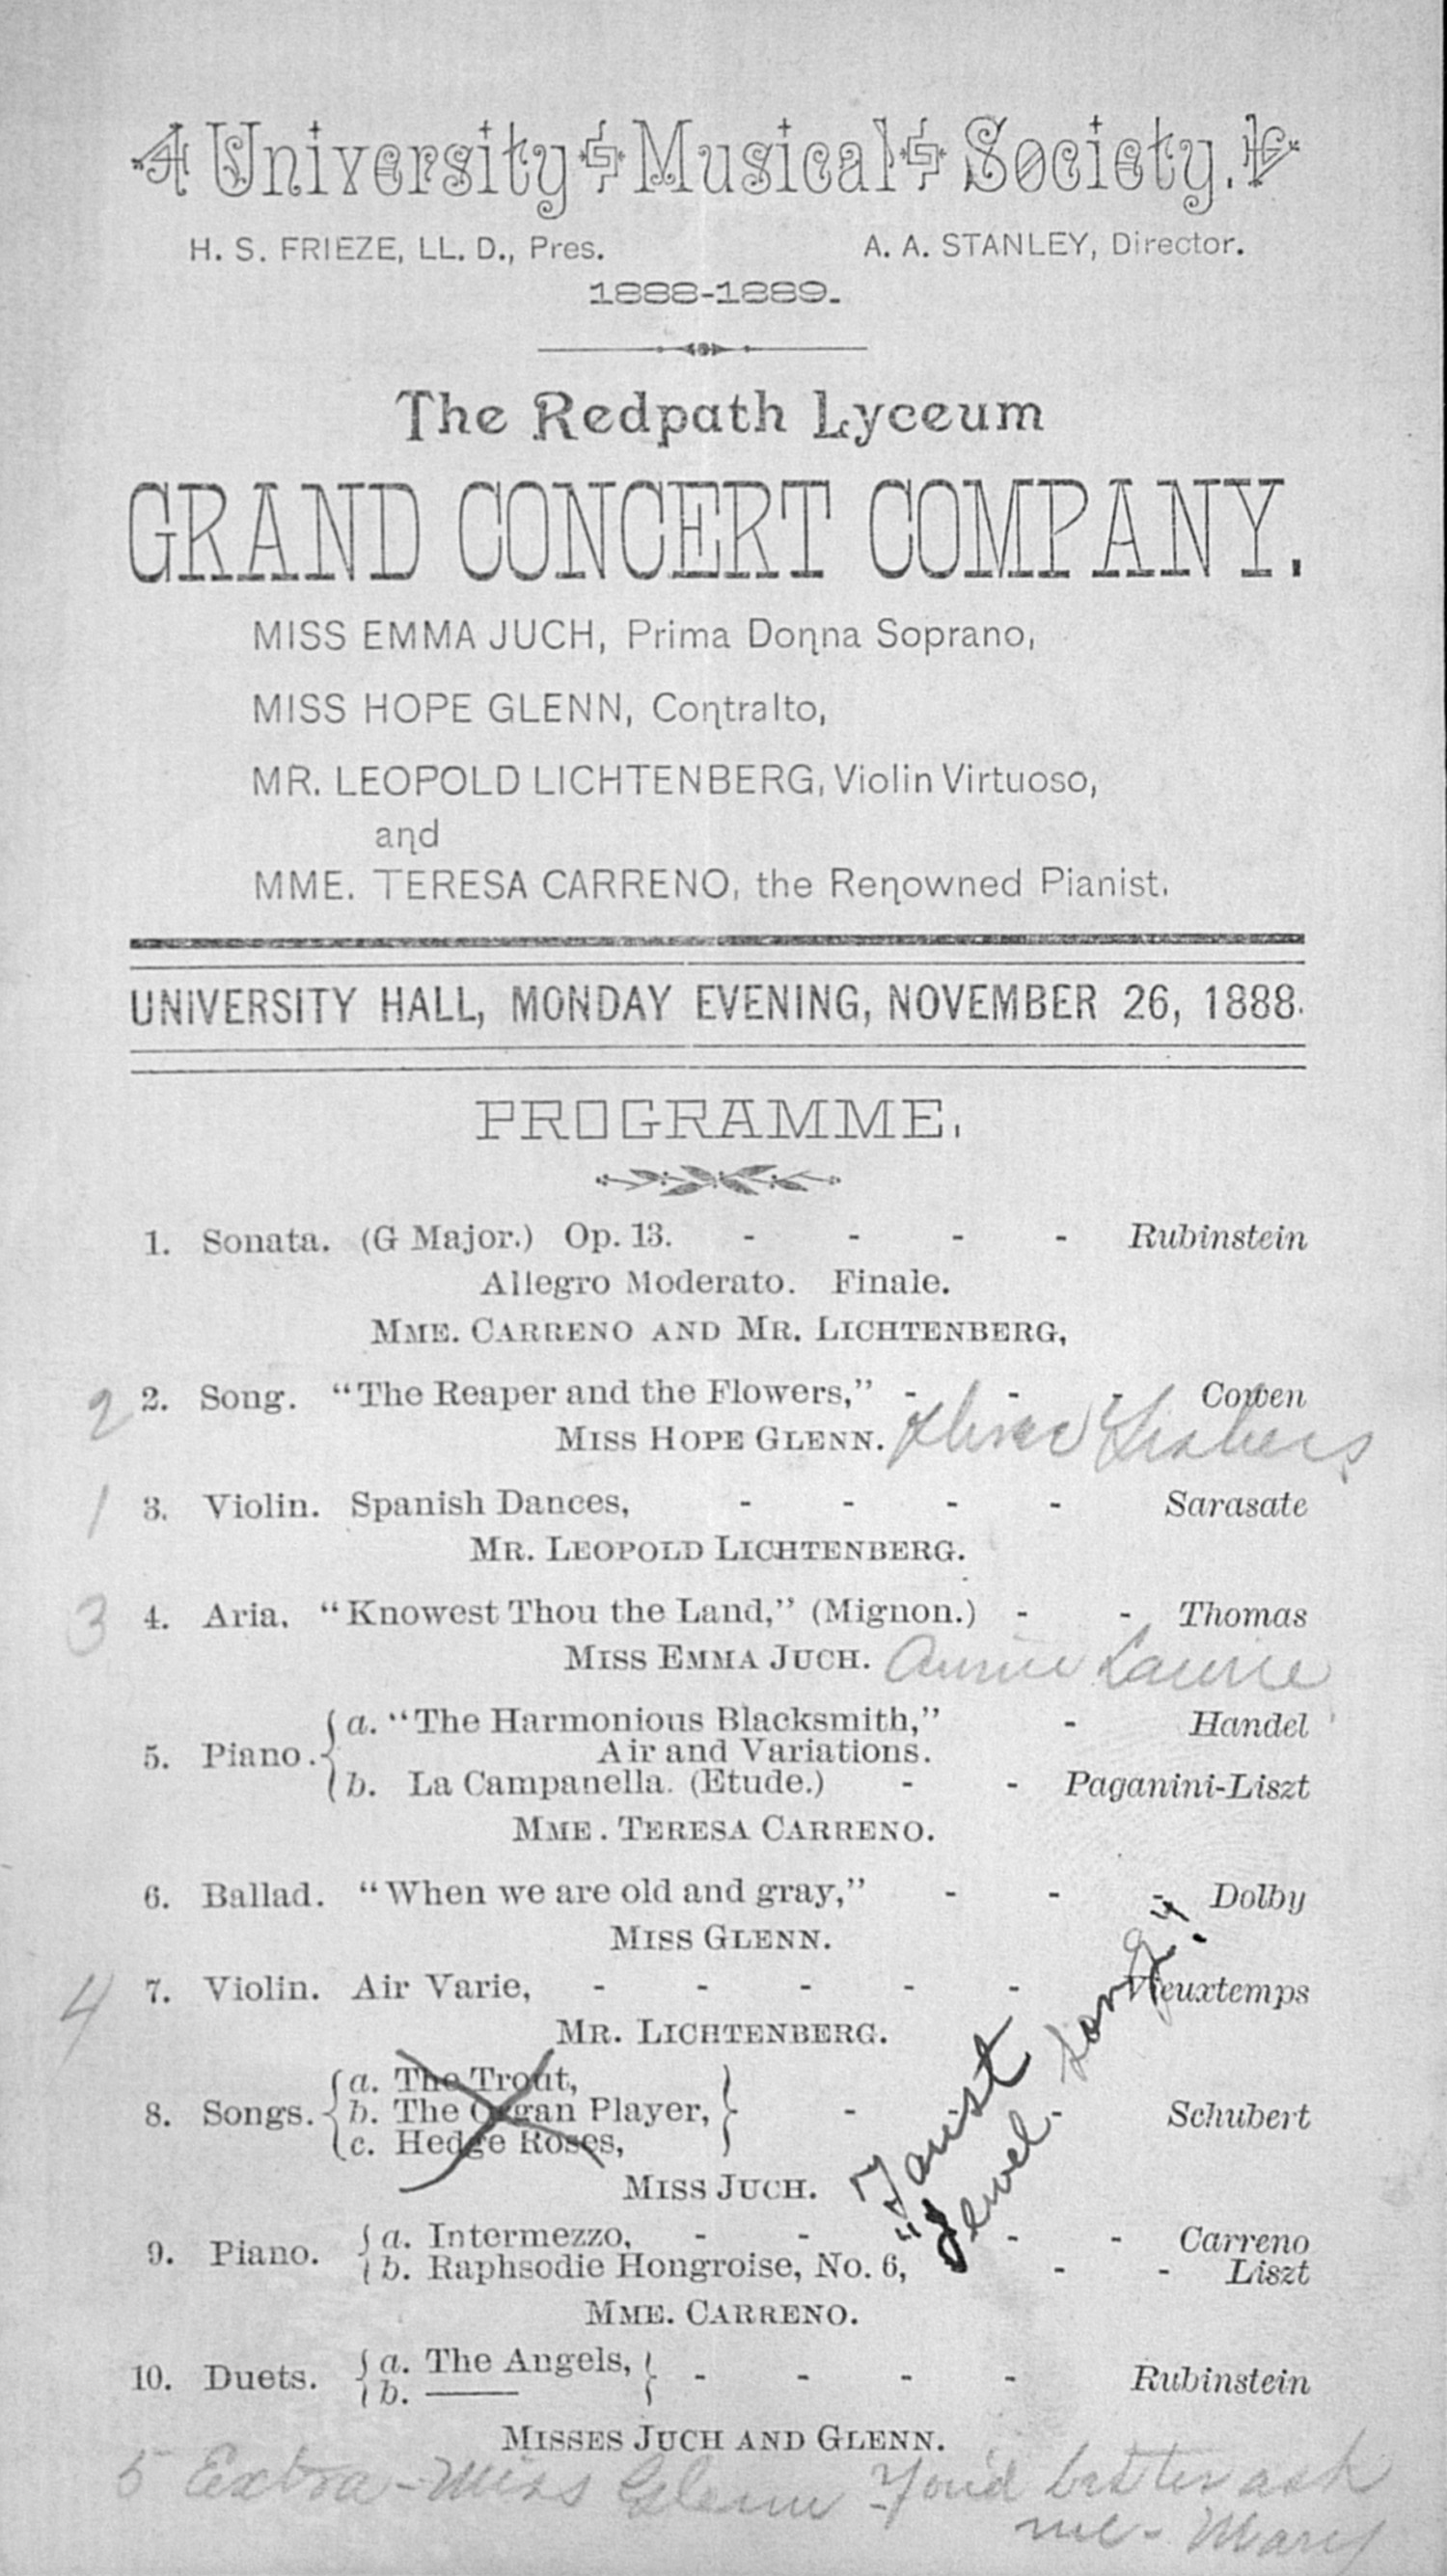 UMS Concert Program, November 26, 1888: The Redpath Lyceum Grand Concert Company  --  image